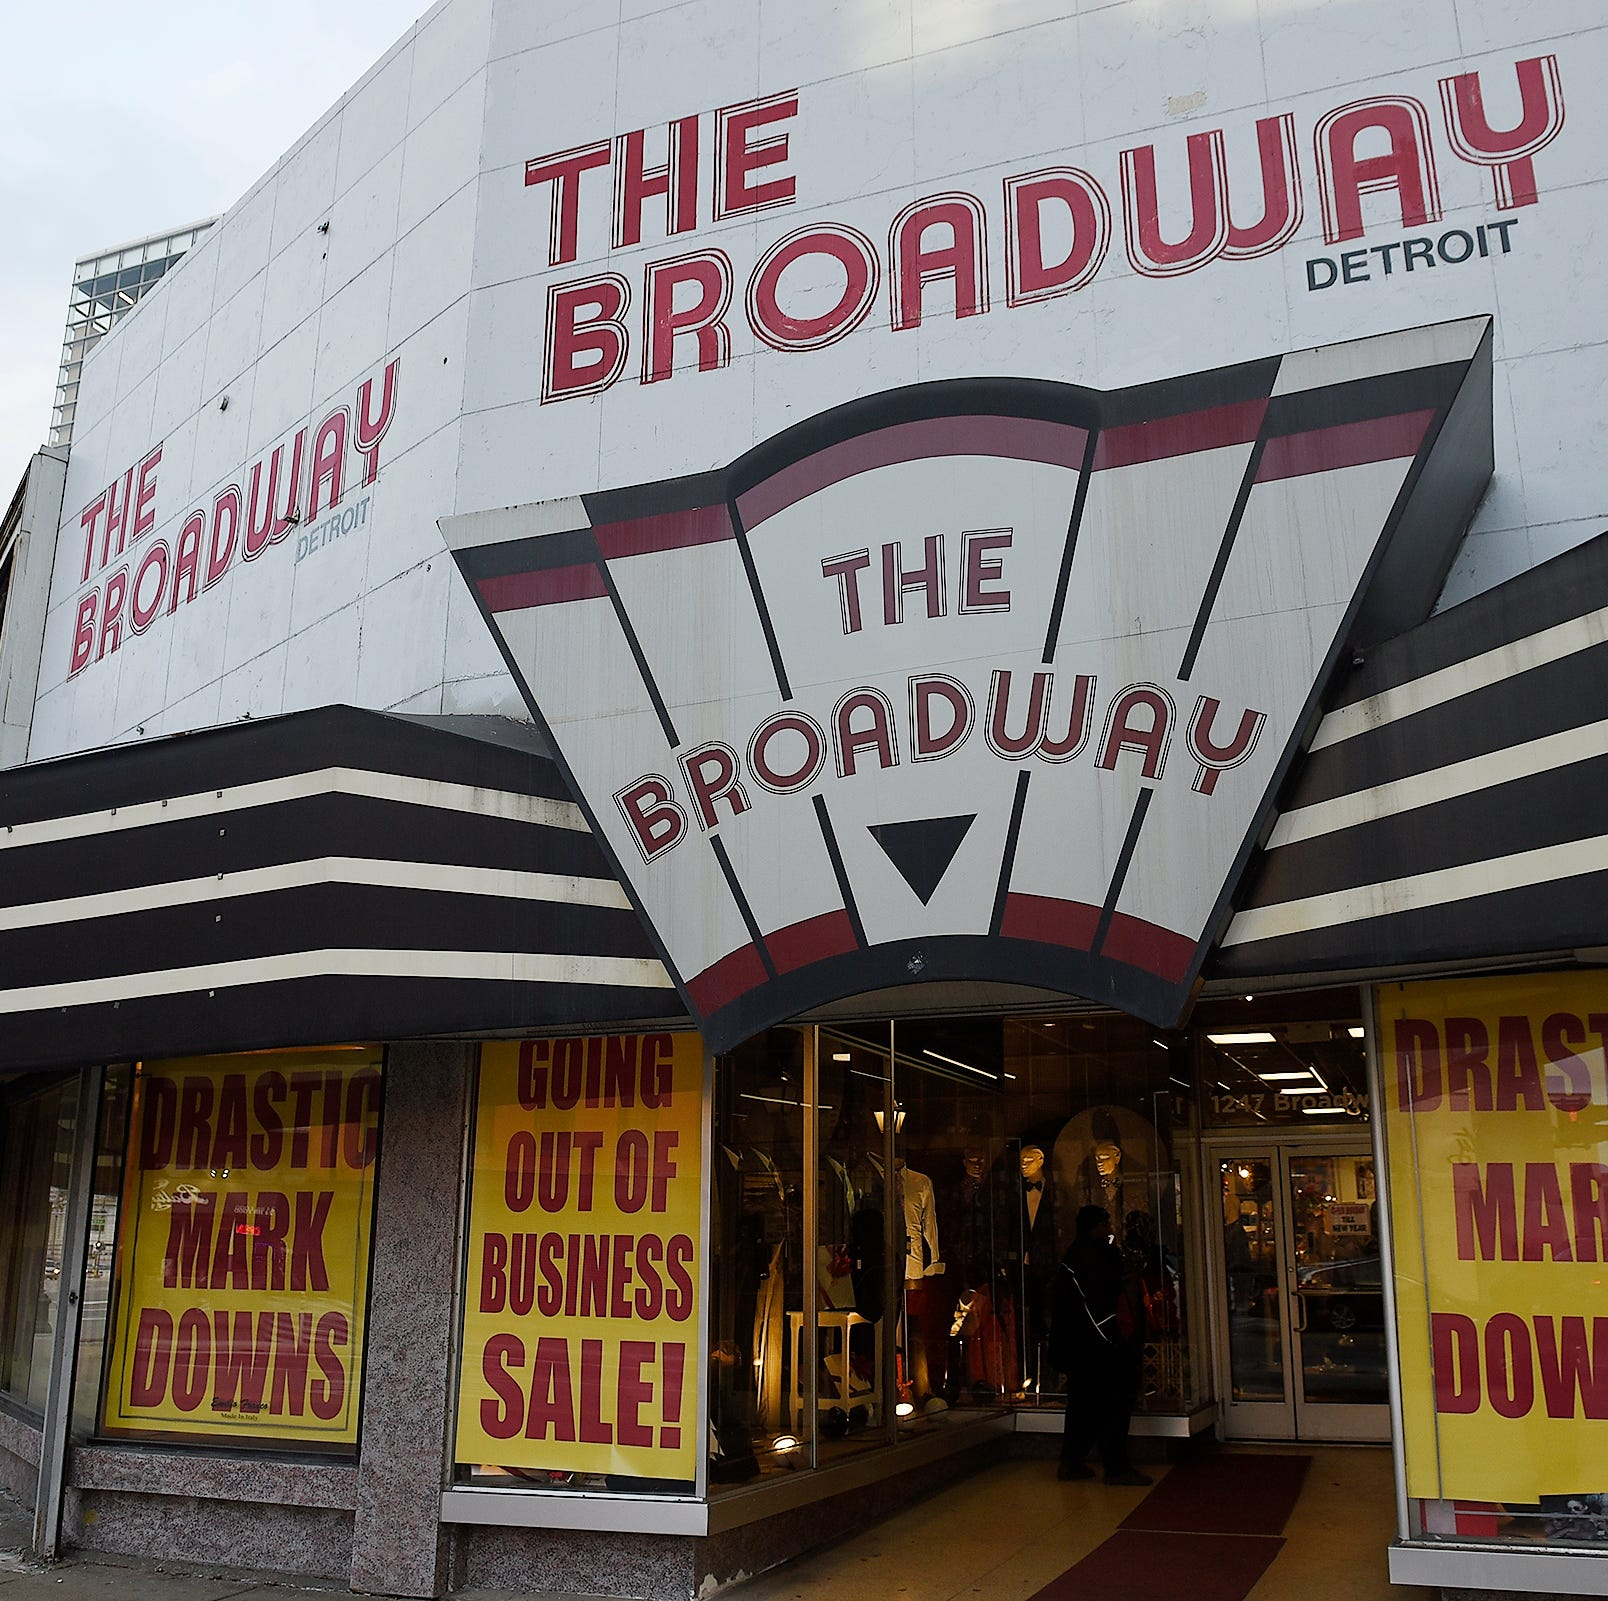 Detroit's Broadway clothing store closing in 2019